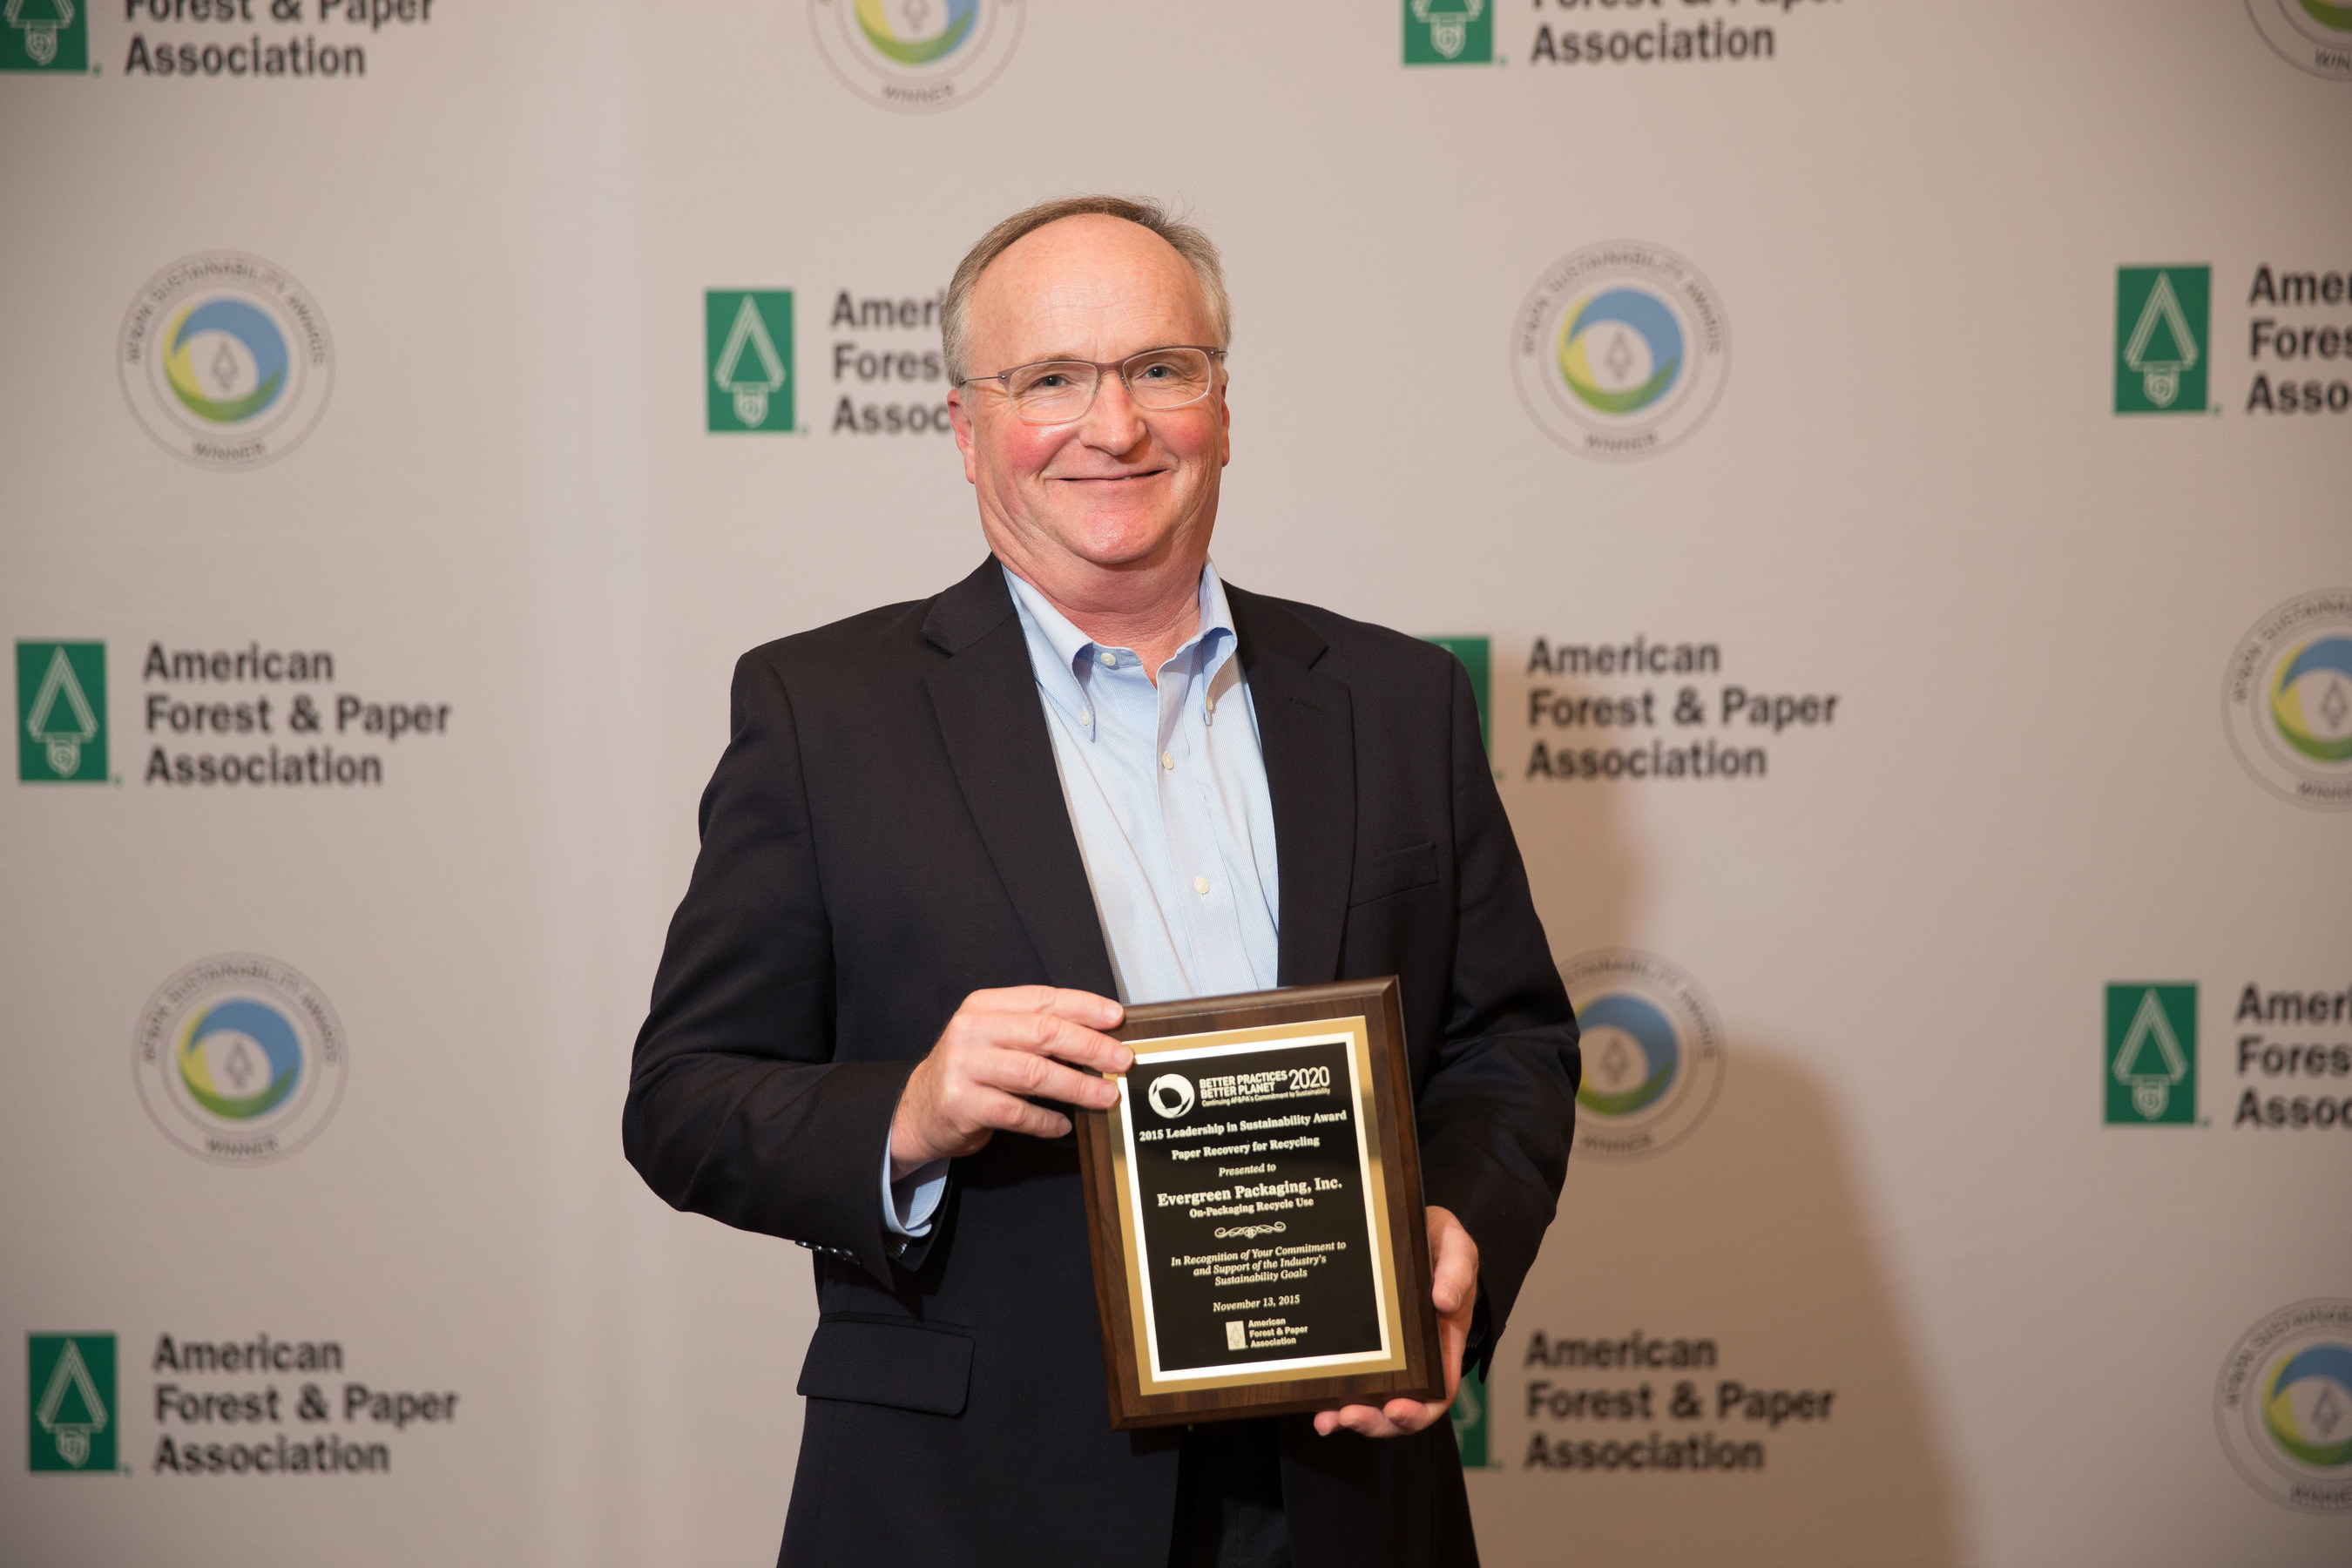 Derric Brown, director of sustainability for Evergreen Packaging, accepts the American Forest & Paper Association's 2015 Leadership in Sustainability Award for Evergreen's On-Packaging Recycle Use project.